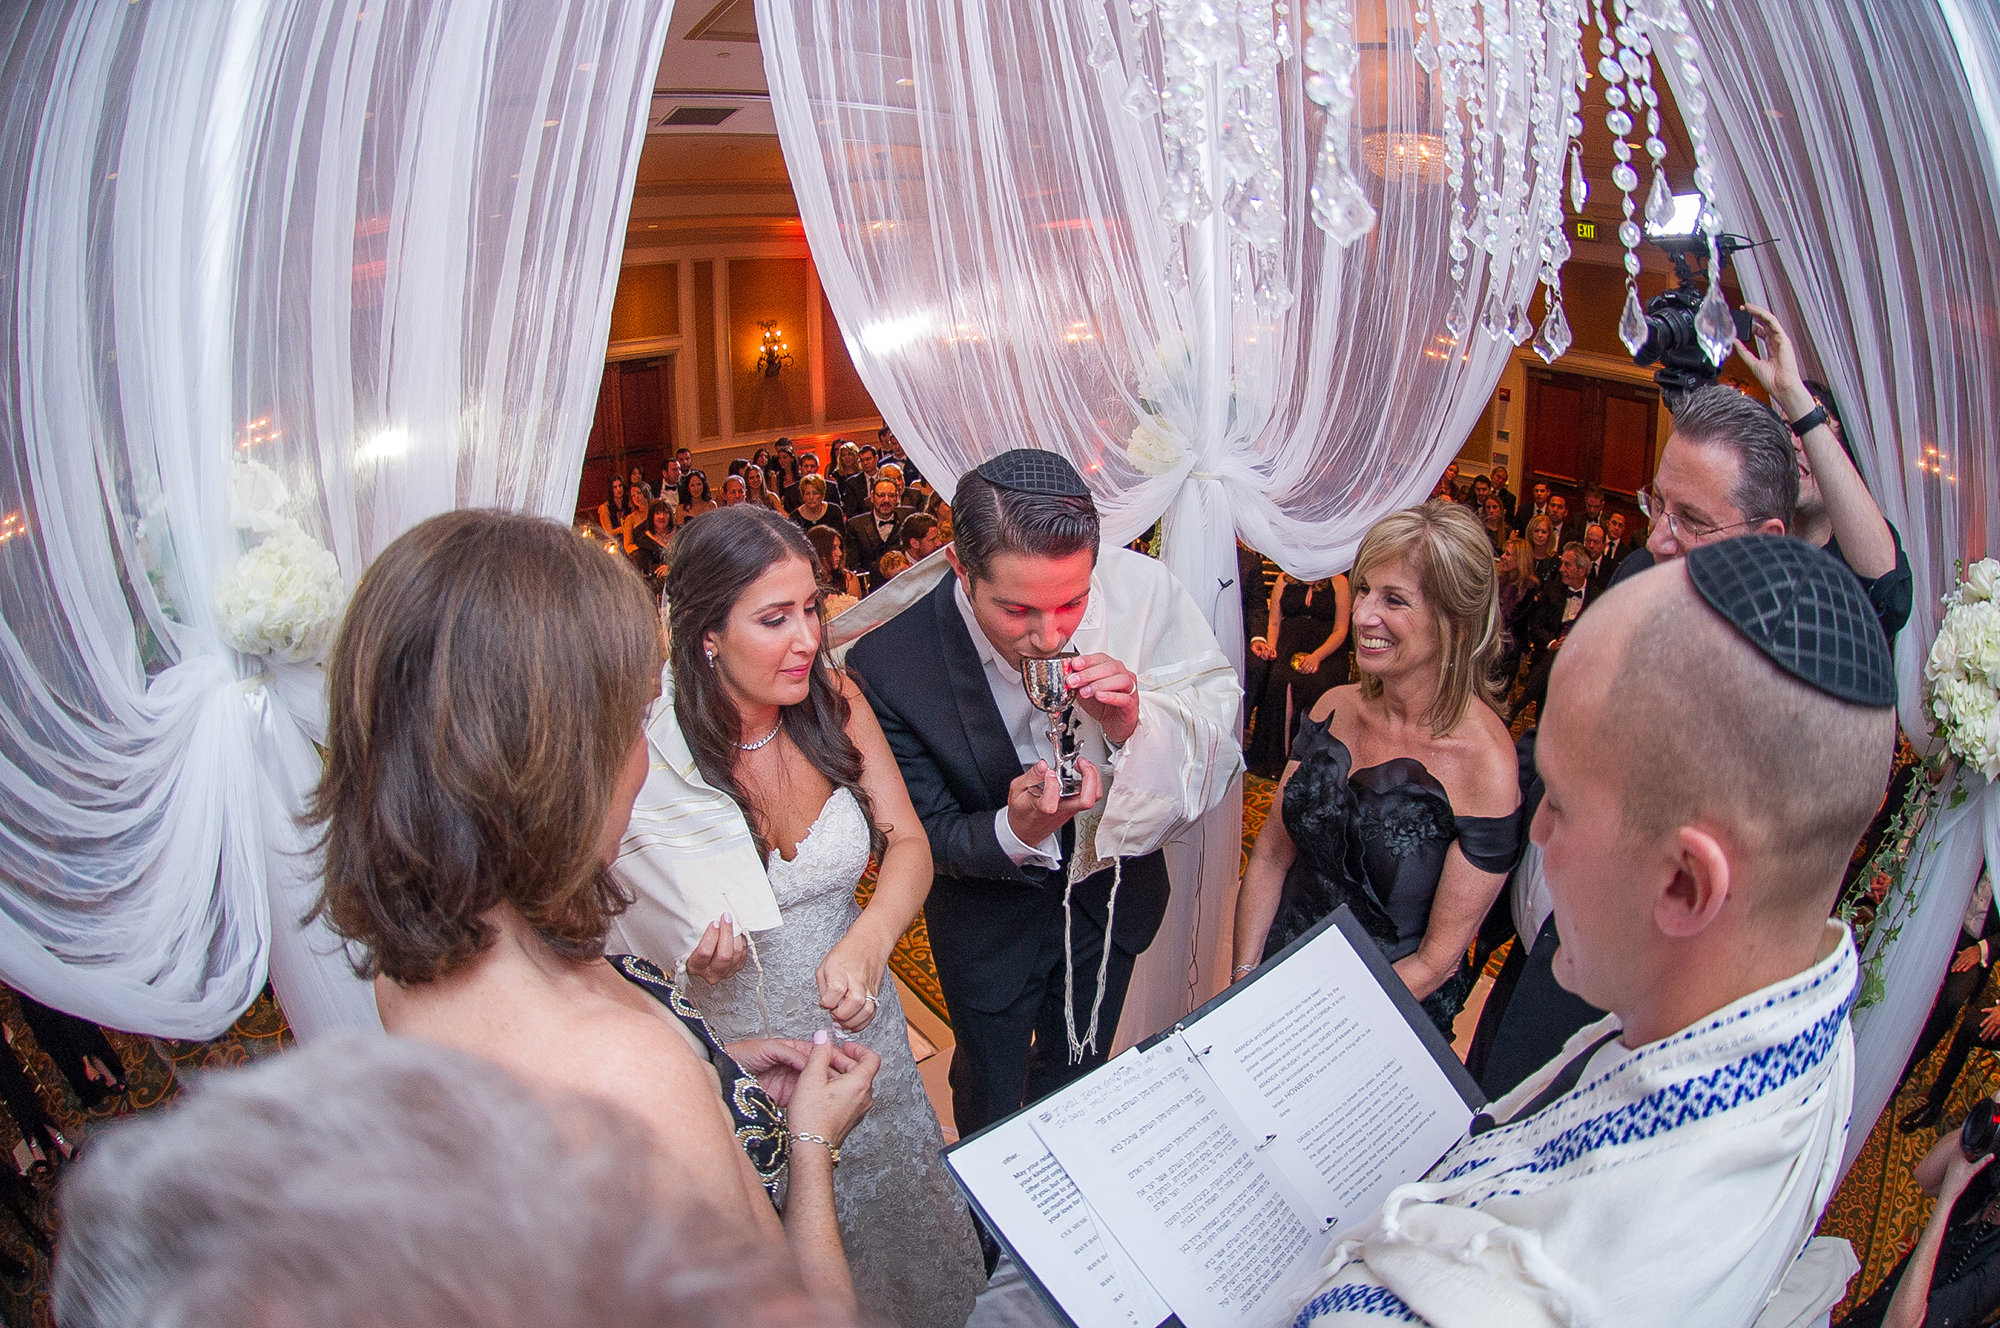 boca-raton-jewish-wedding-jeff-kolodny-photos-20